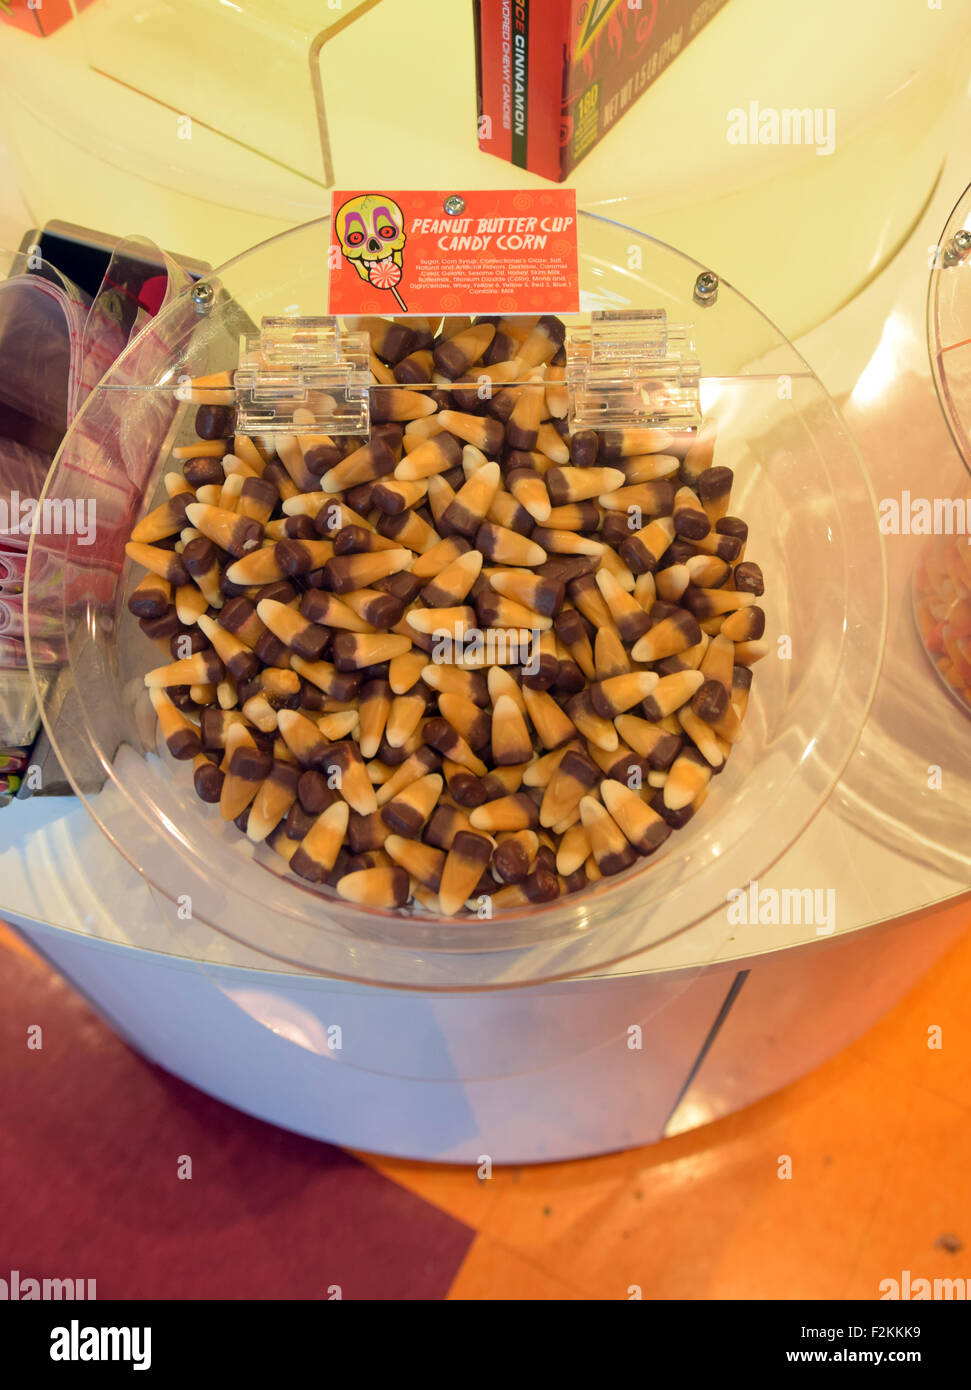 Peanut Buttercup candy corn for sale by the pound at IT'SUGAR candy shop on Broadway in Greenwich Village, New - Stock Image